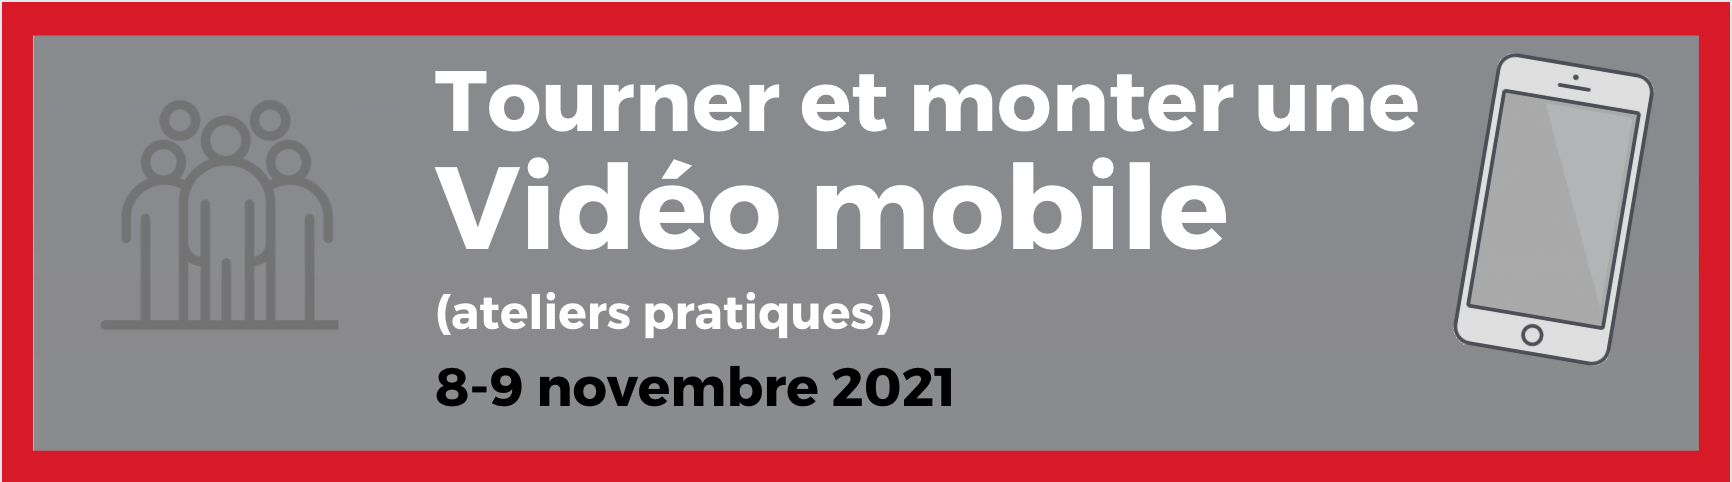 video mobile formation